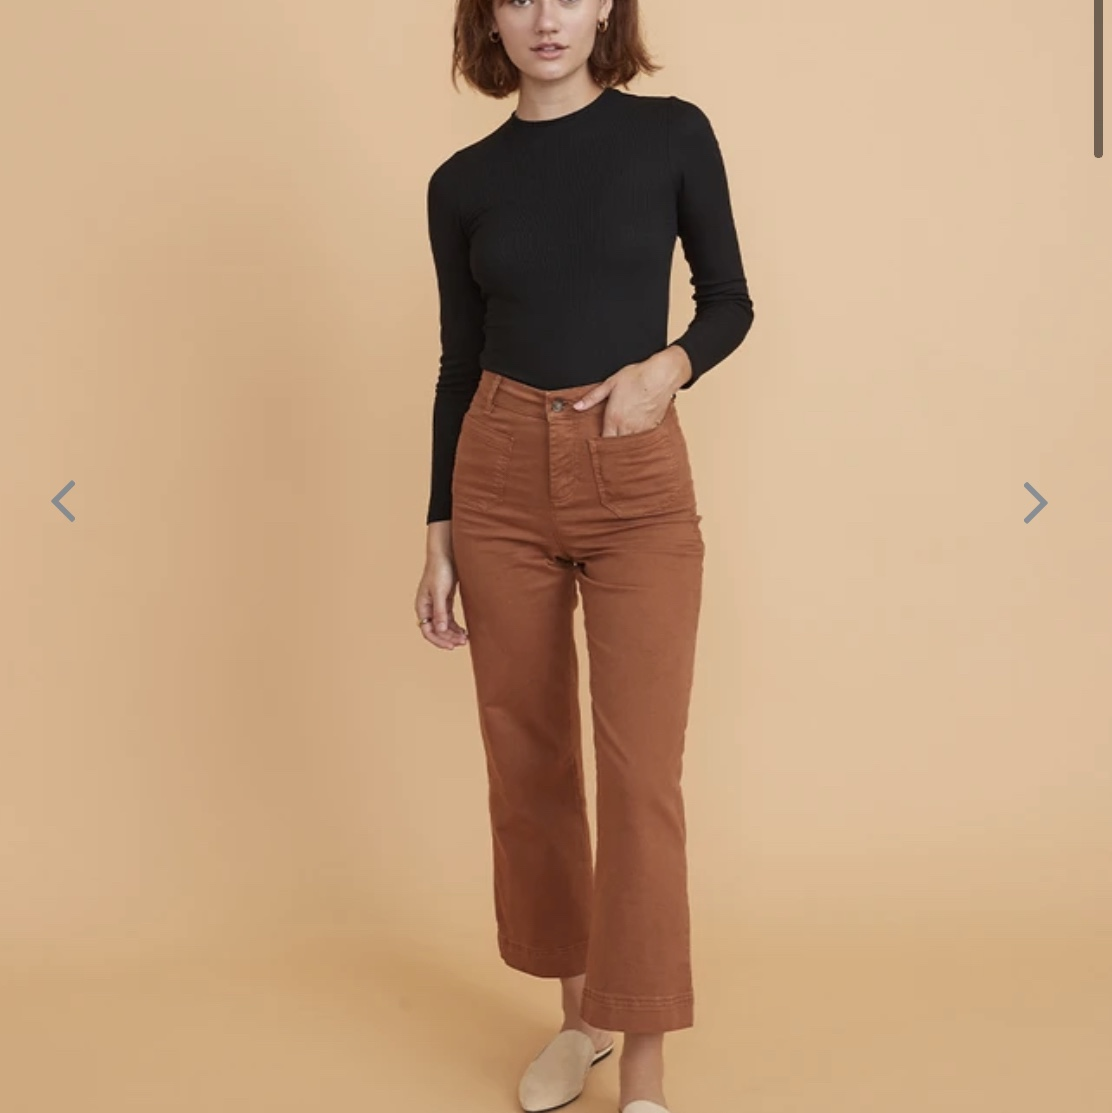 Product Image 1 - Model Photos for a fit